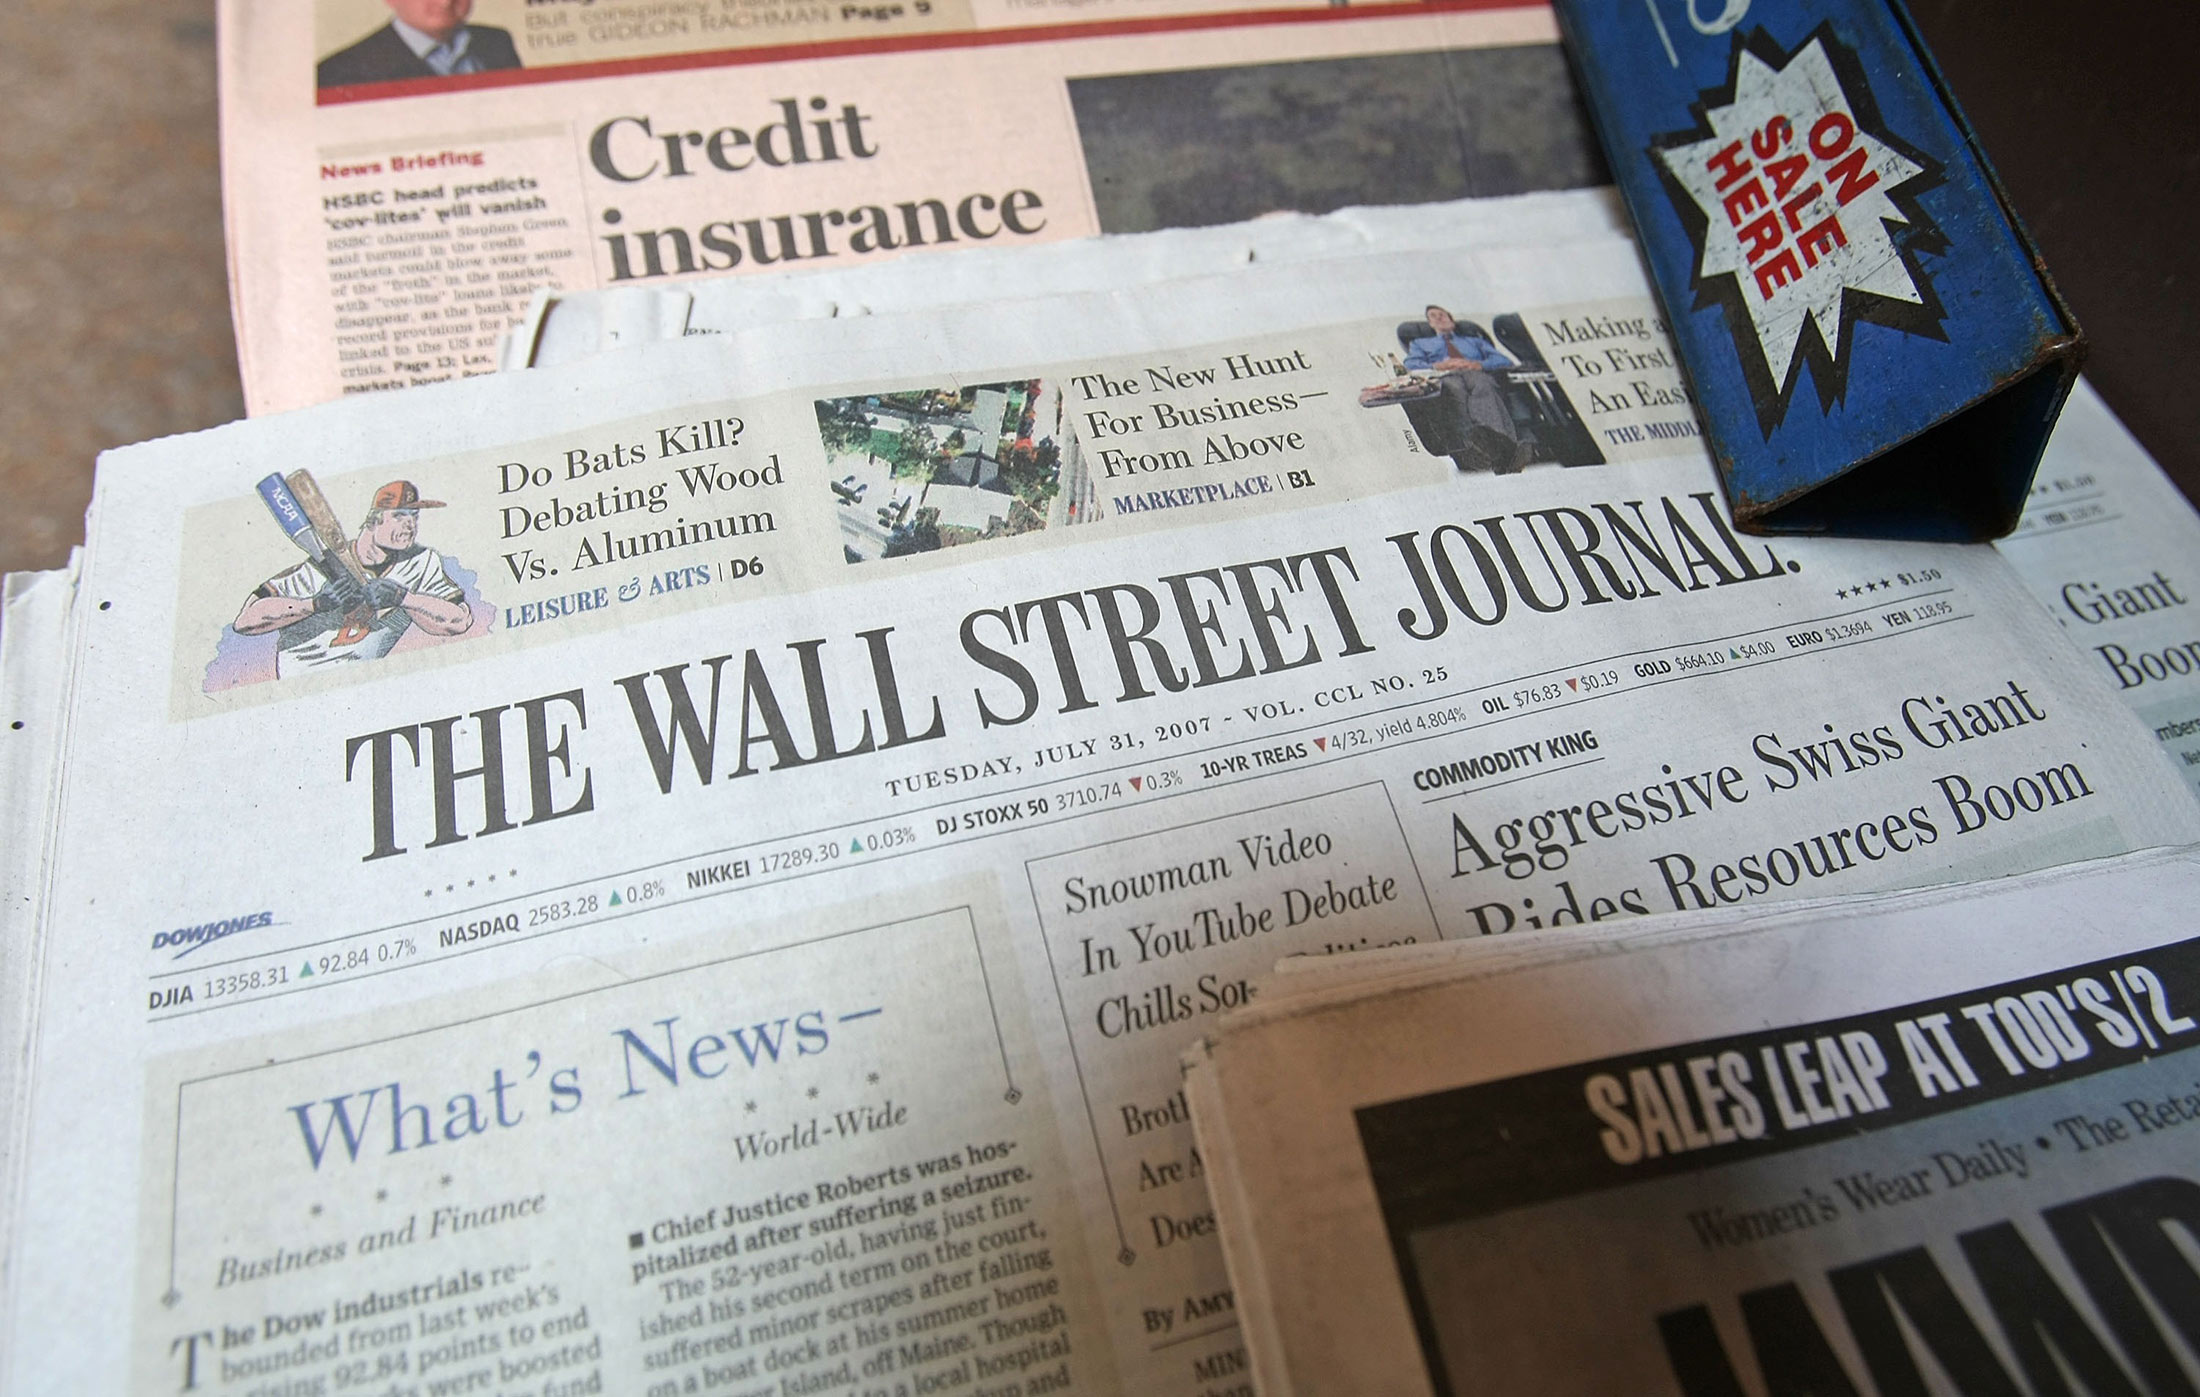 WSJ to Cut Jobs in Europe Asia Bureaus of Paper Union Rep Says